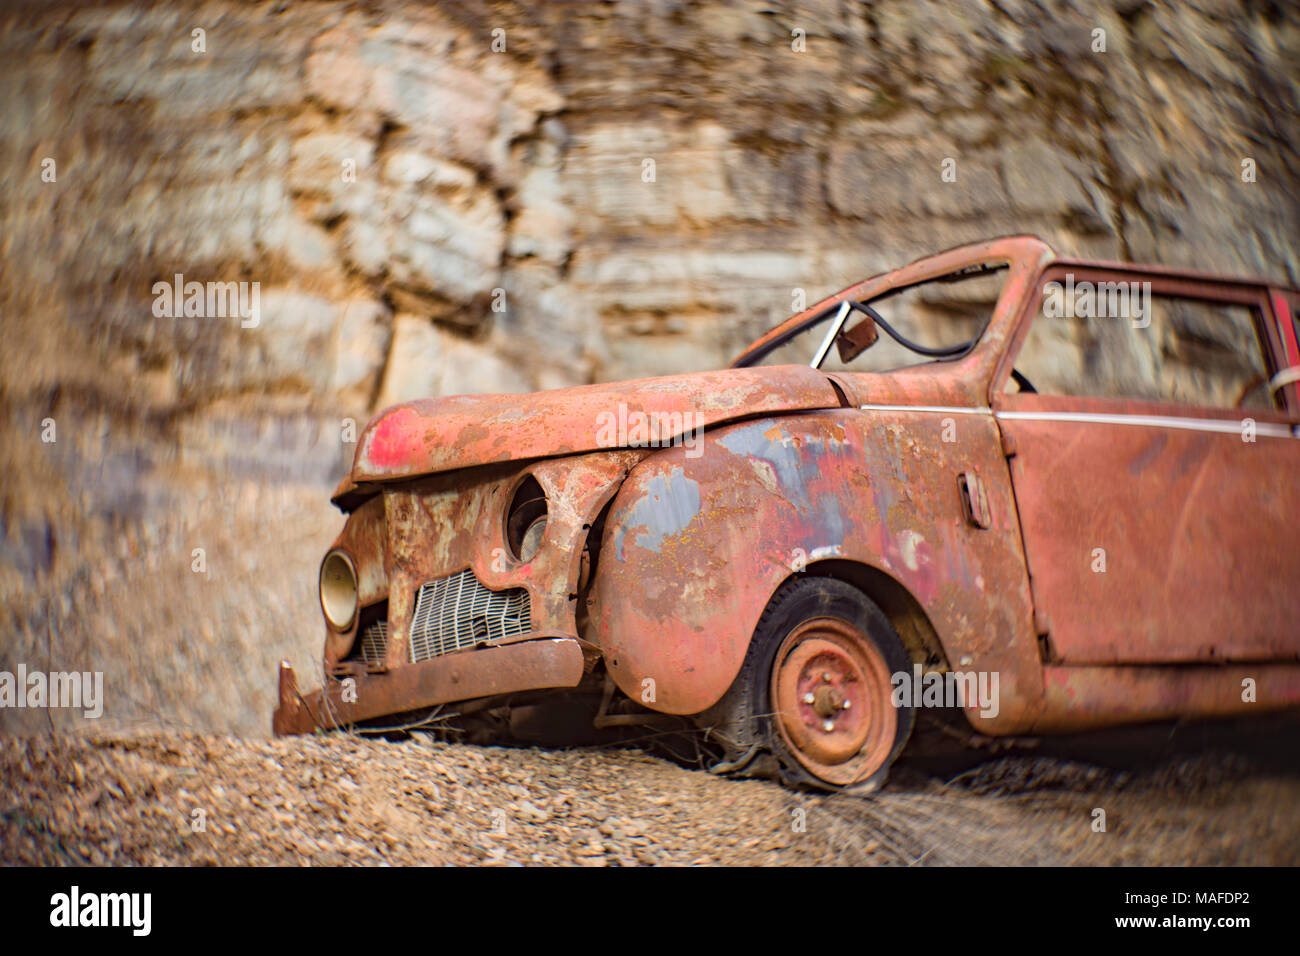 A rusty 1947 Crosley two-door convertible, in a stone quarry, east of Clark Fork Idaho. - Stock Image